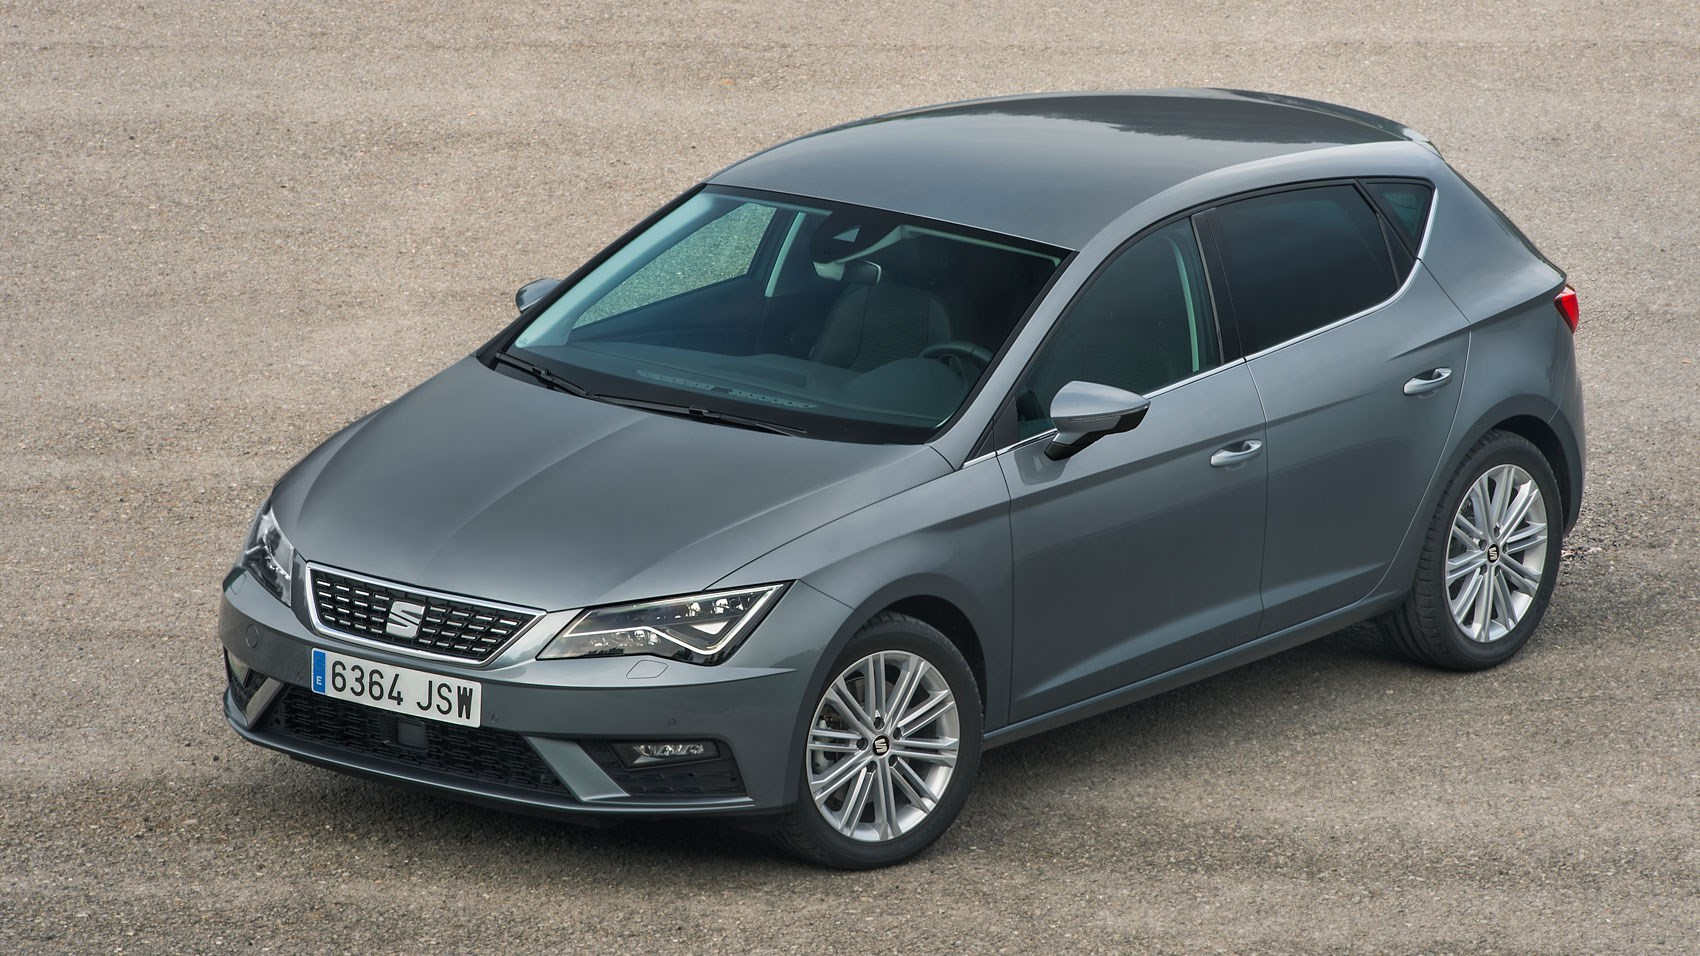 seat leon 1 0 tsi test s r benzin magazin. Black Bedroom Furniture Sets. Home Design Ideas